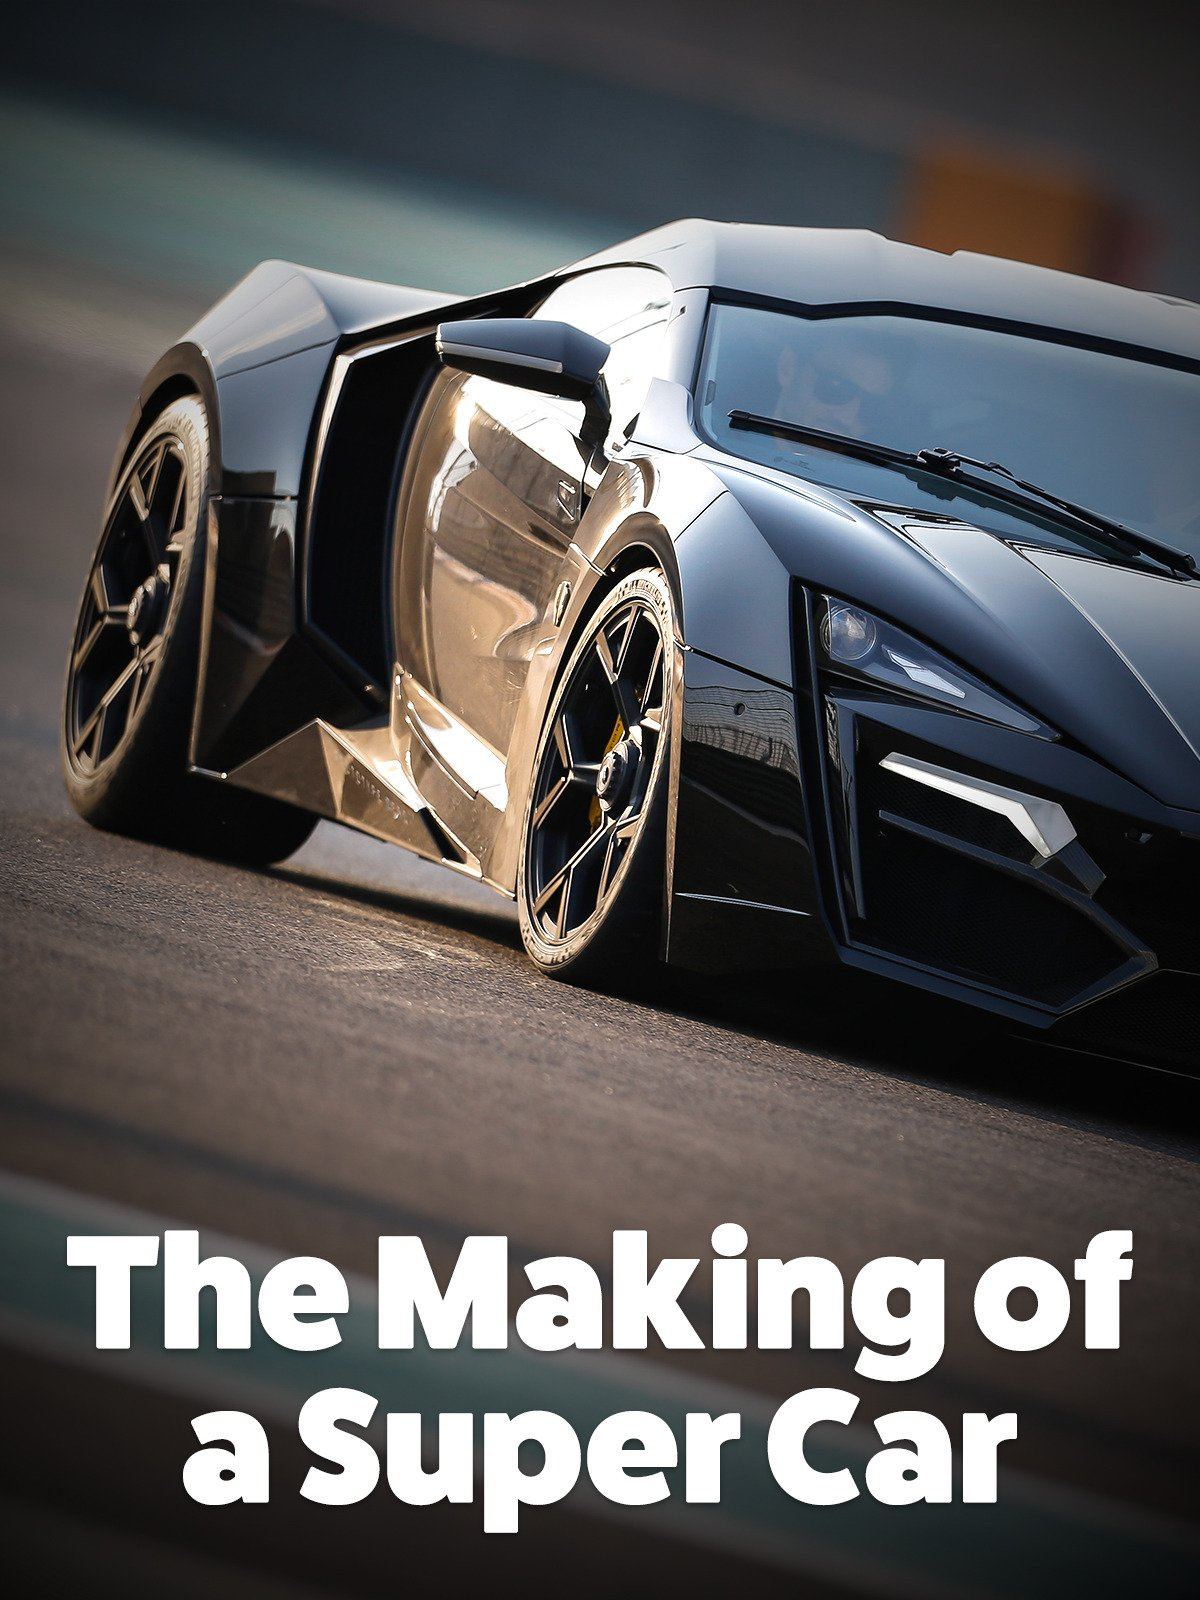 The Making of a Super Car